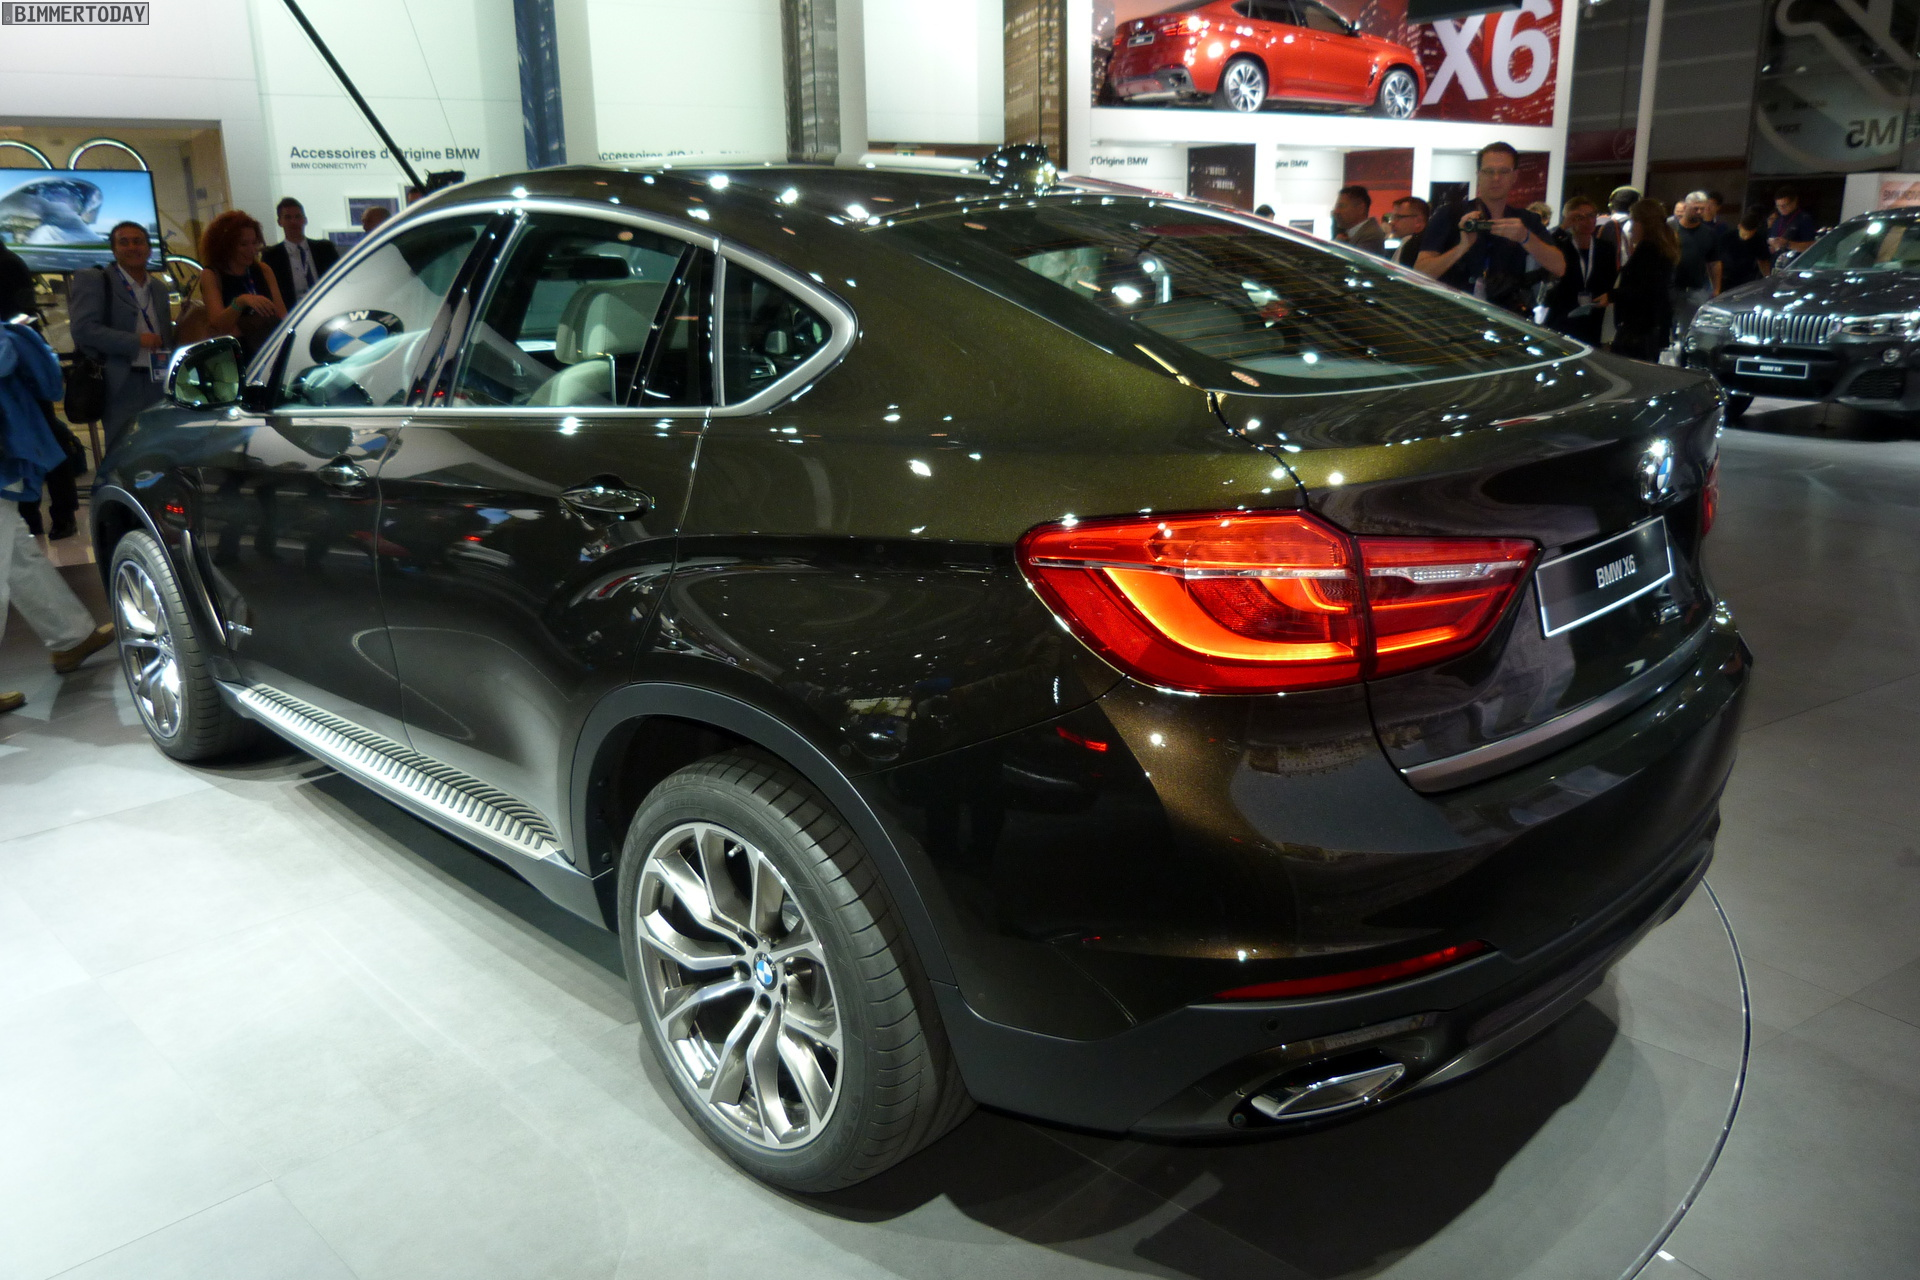 2014 Paris Motor Show The New Bmw X6